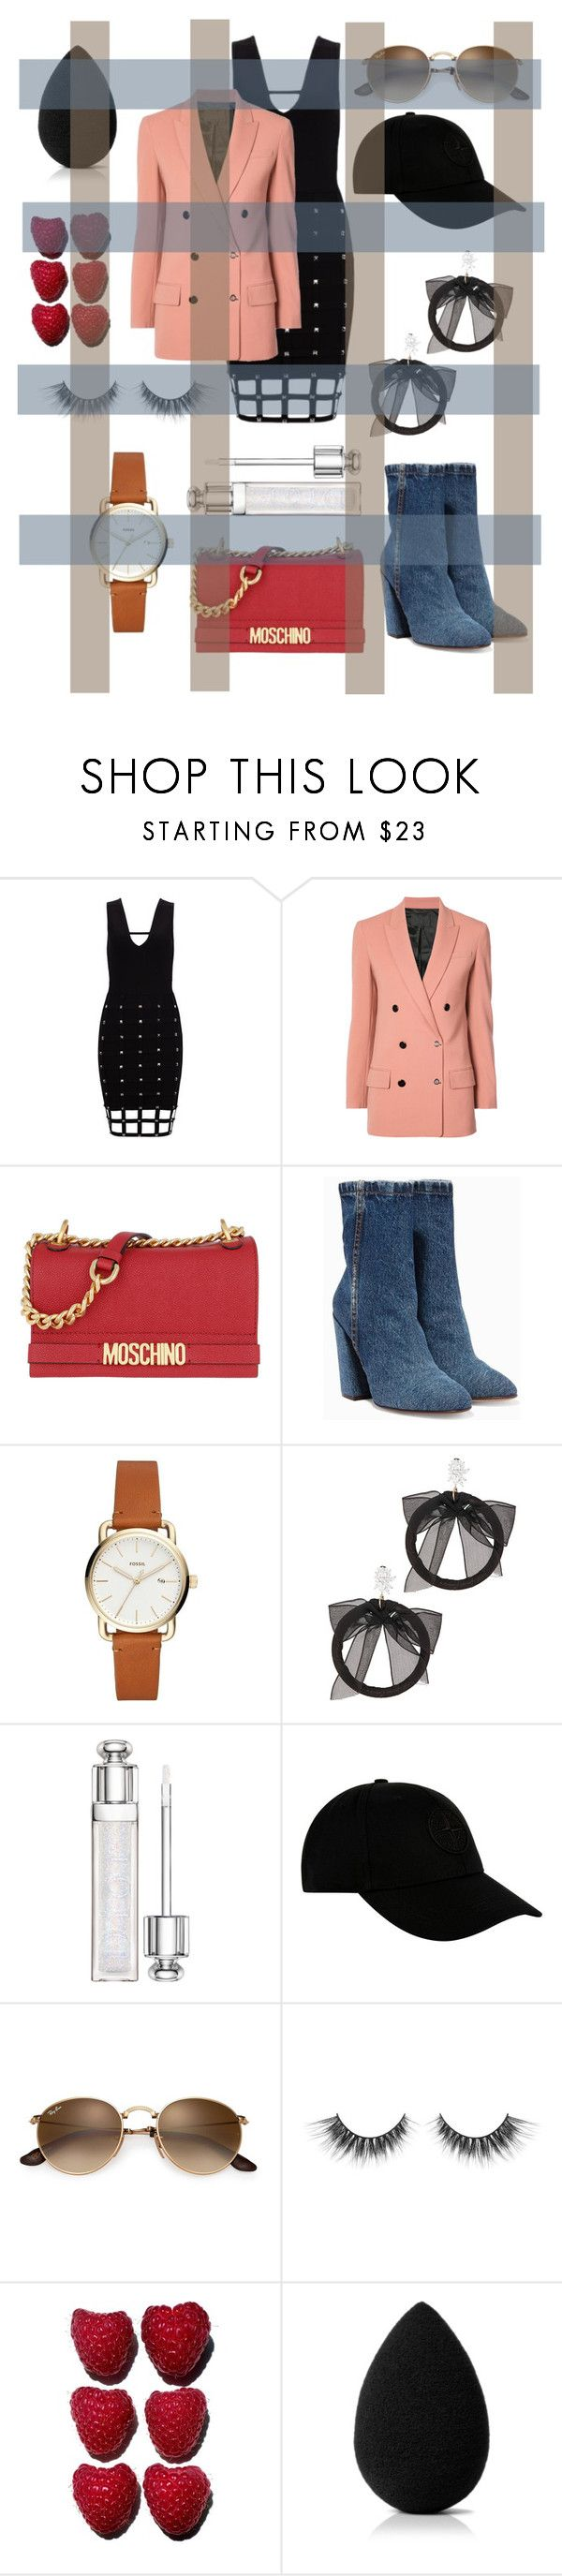 """""""Untitled #191"""" by livefastdng ❤ liked on Polyvore featuring Alexander Wang, Moschino, Dries Van Noten, Fallon, STONE ISLAND and beautyblender"""